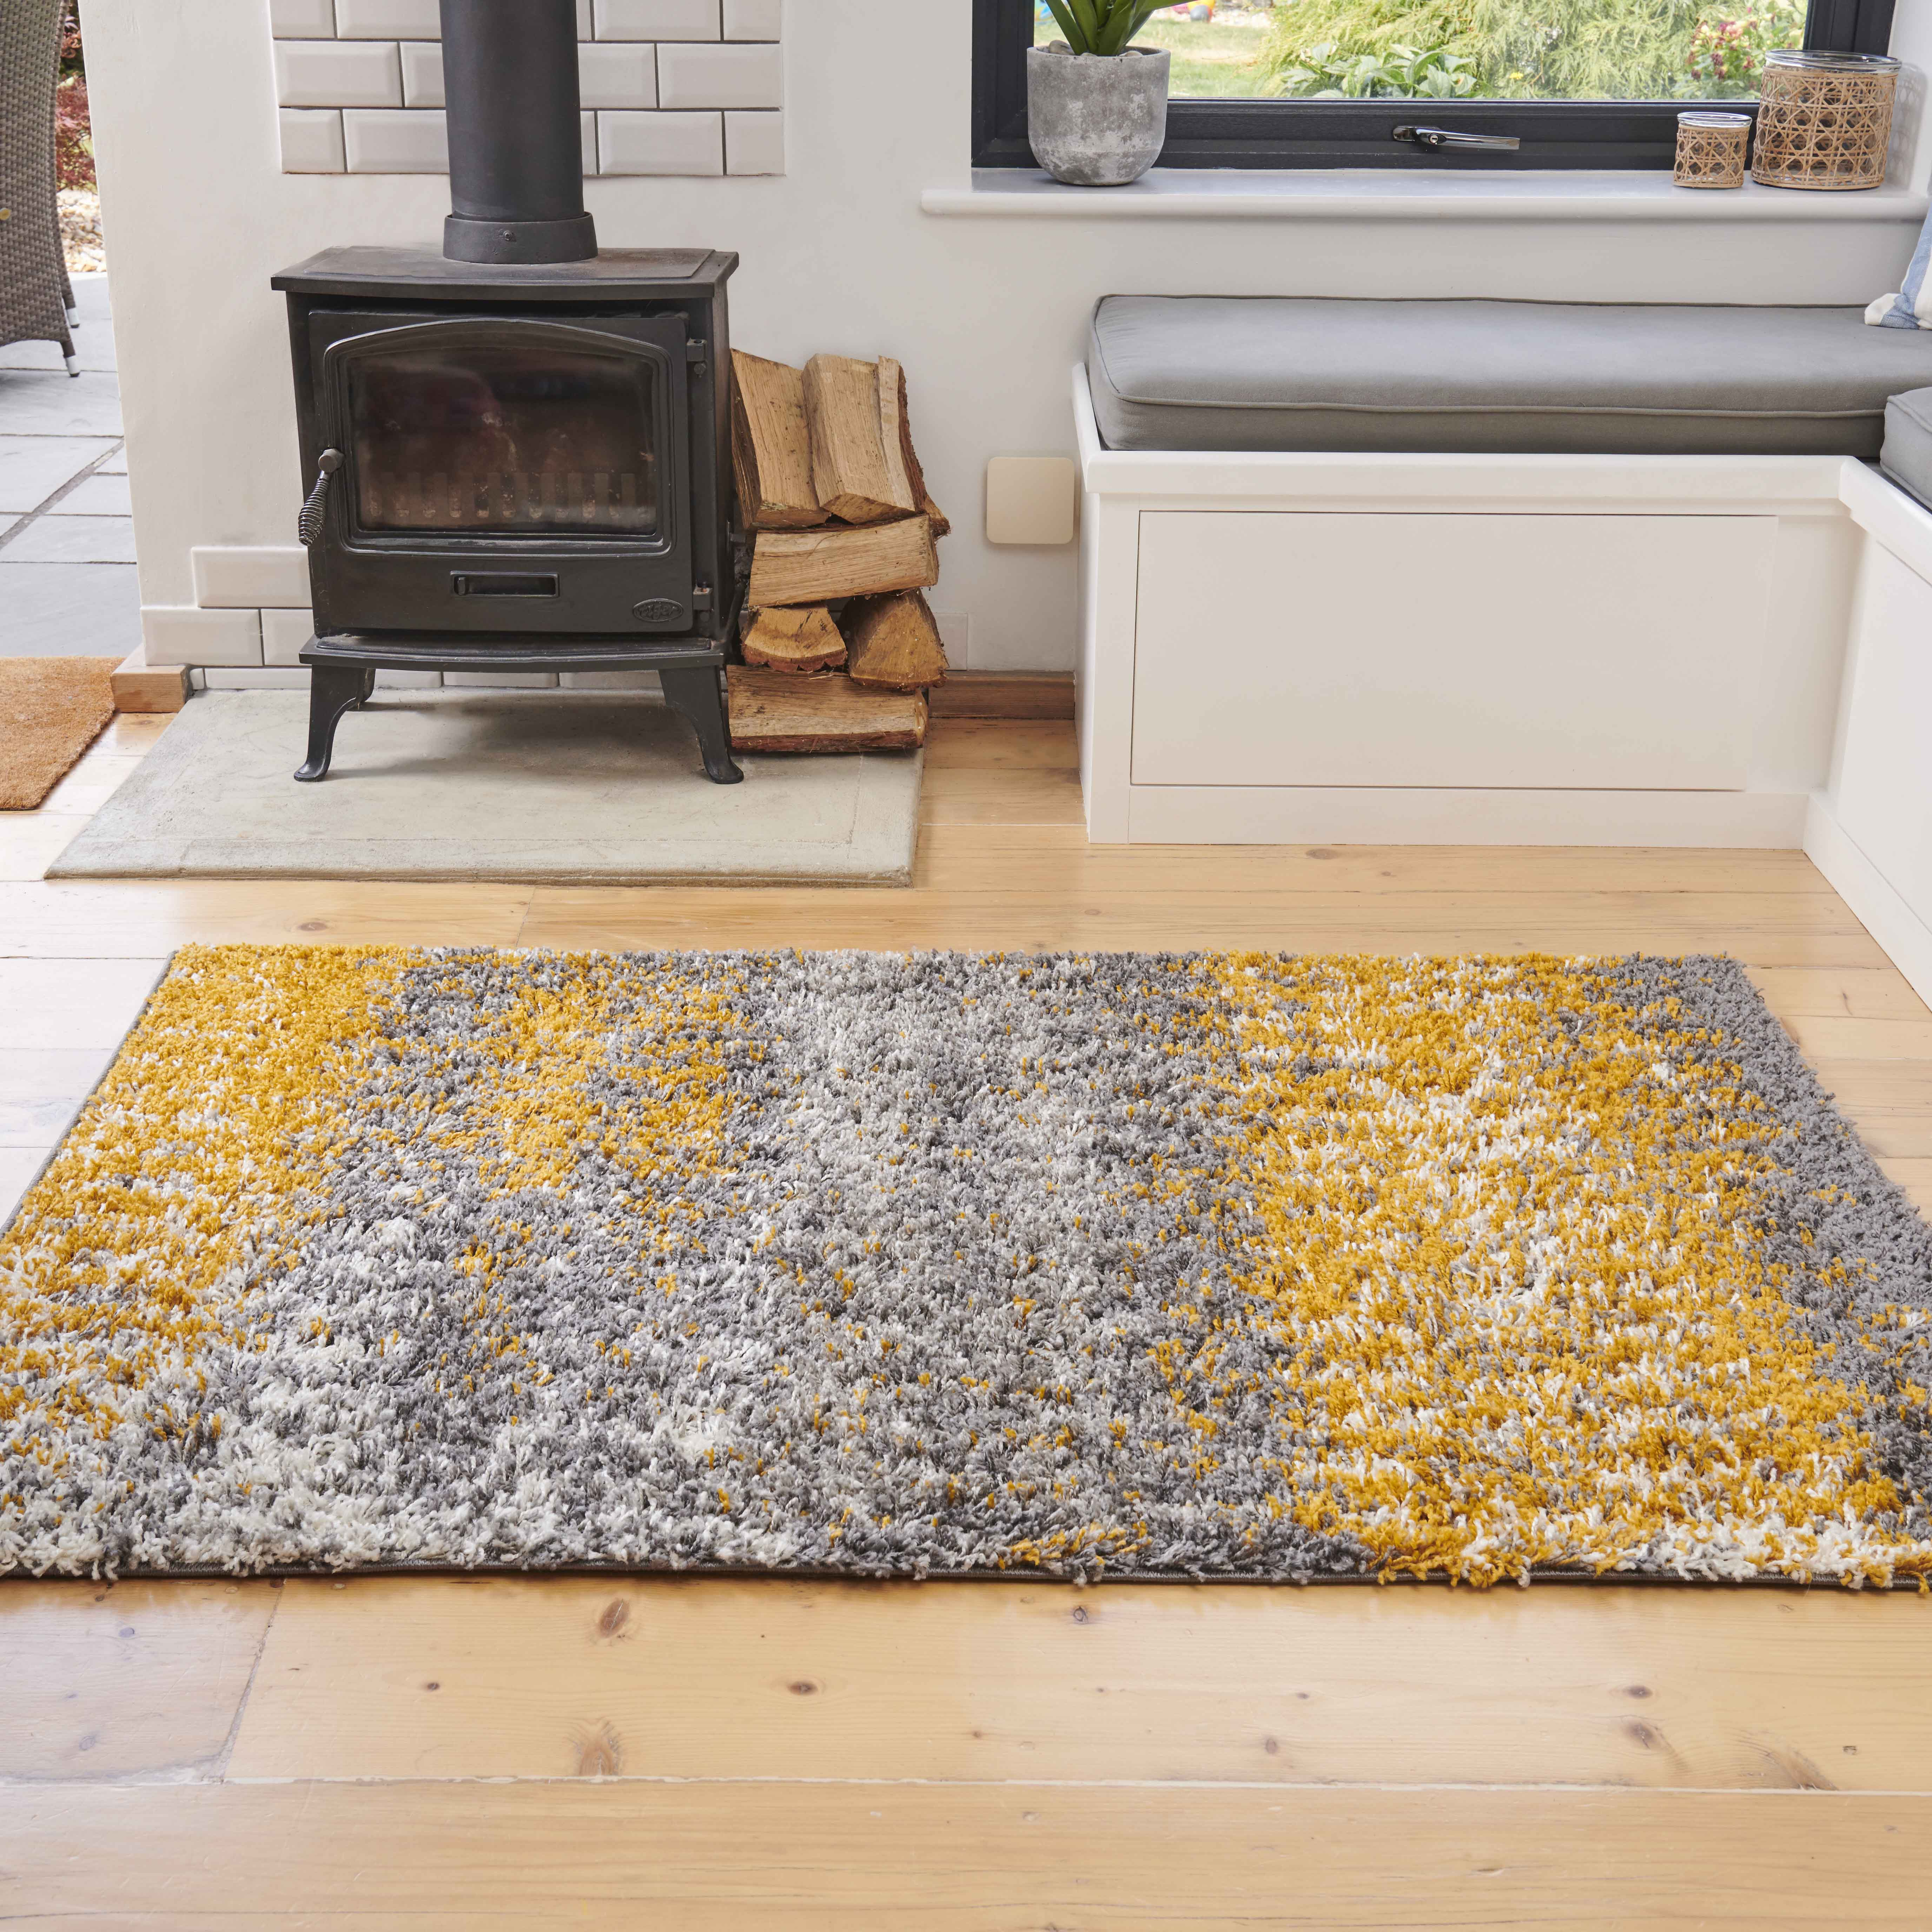 Ochre Distressed Textured Shaggy Rug - Florence